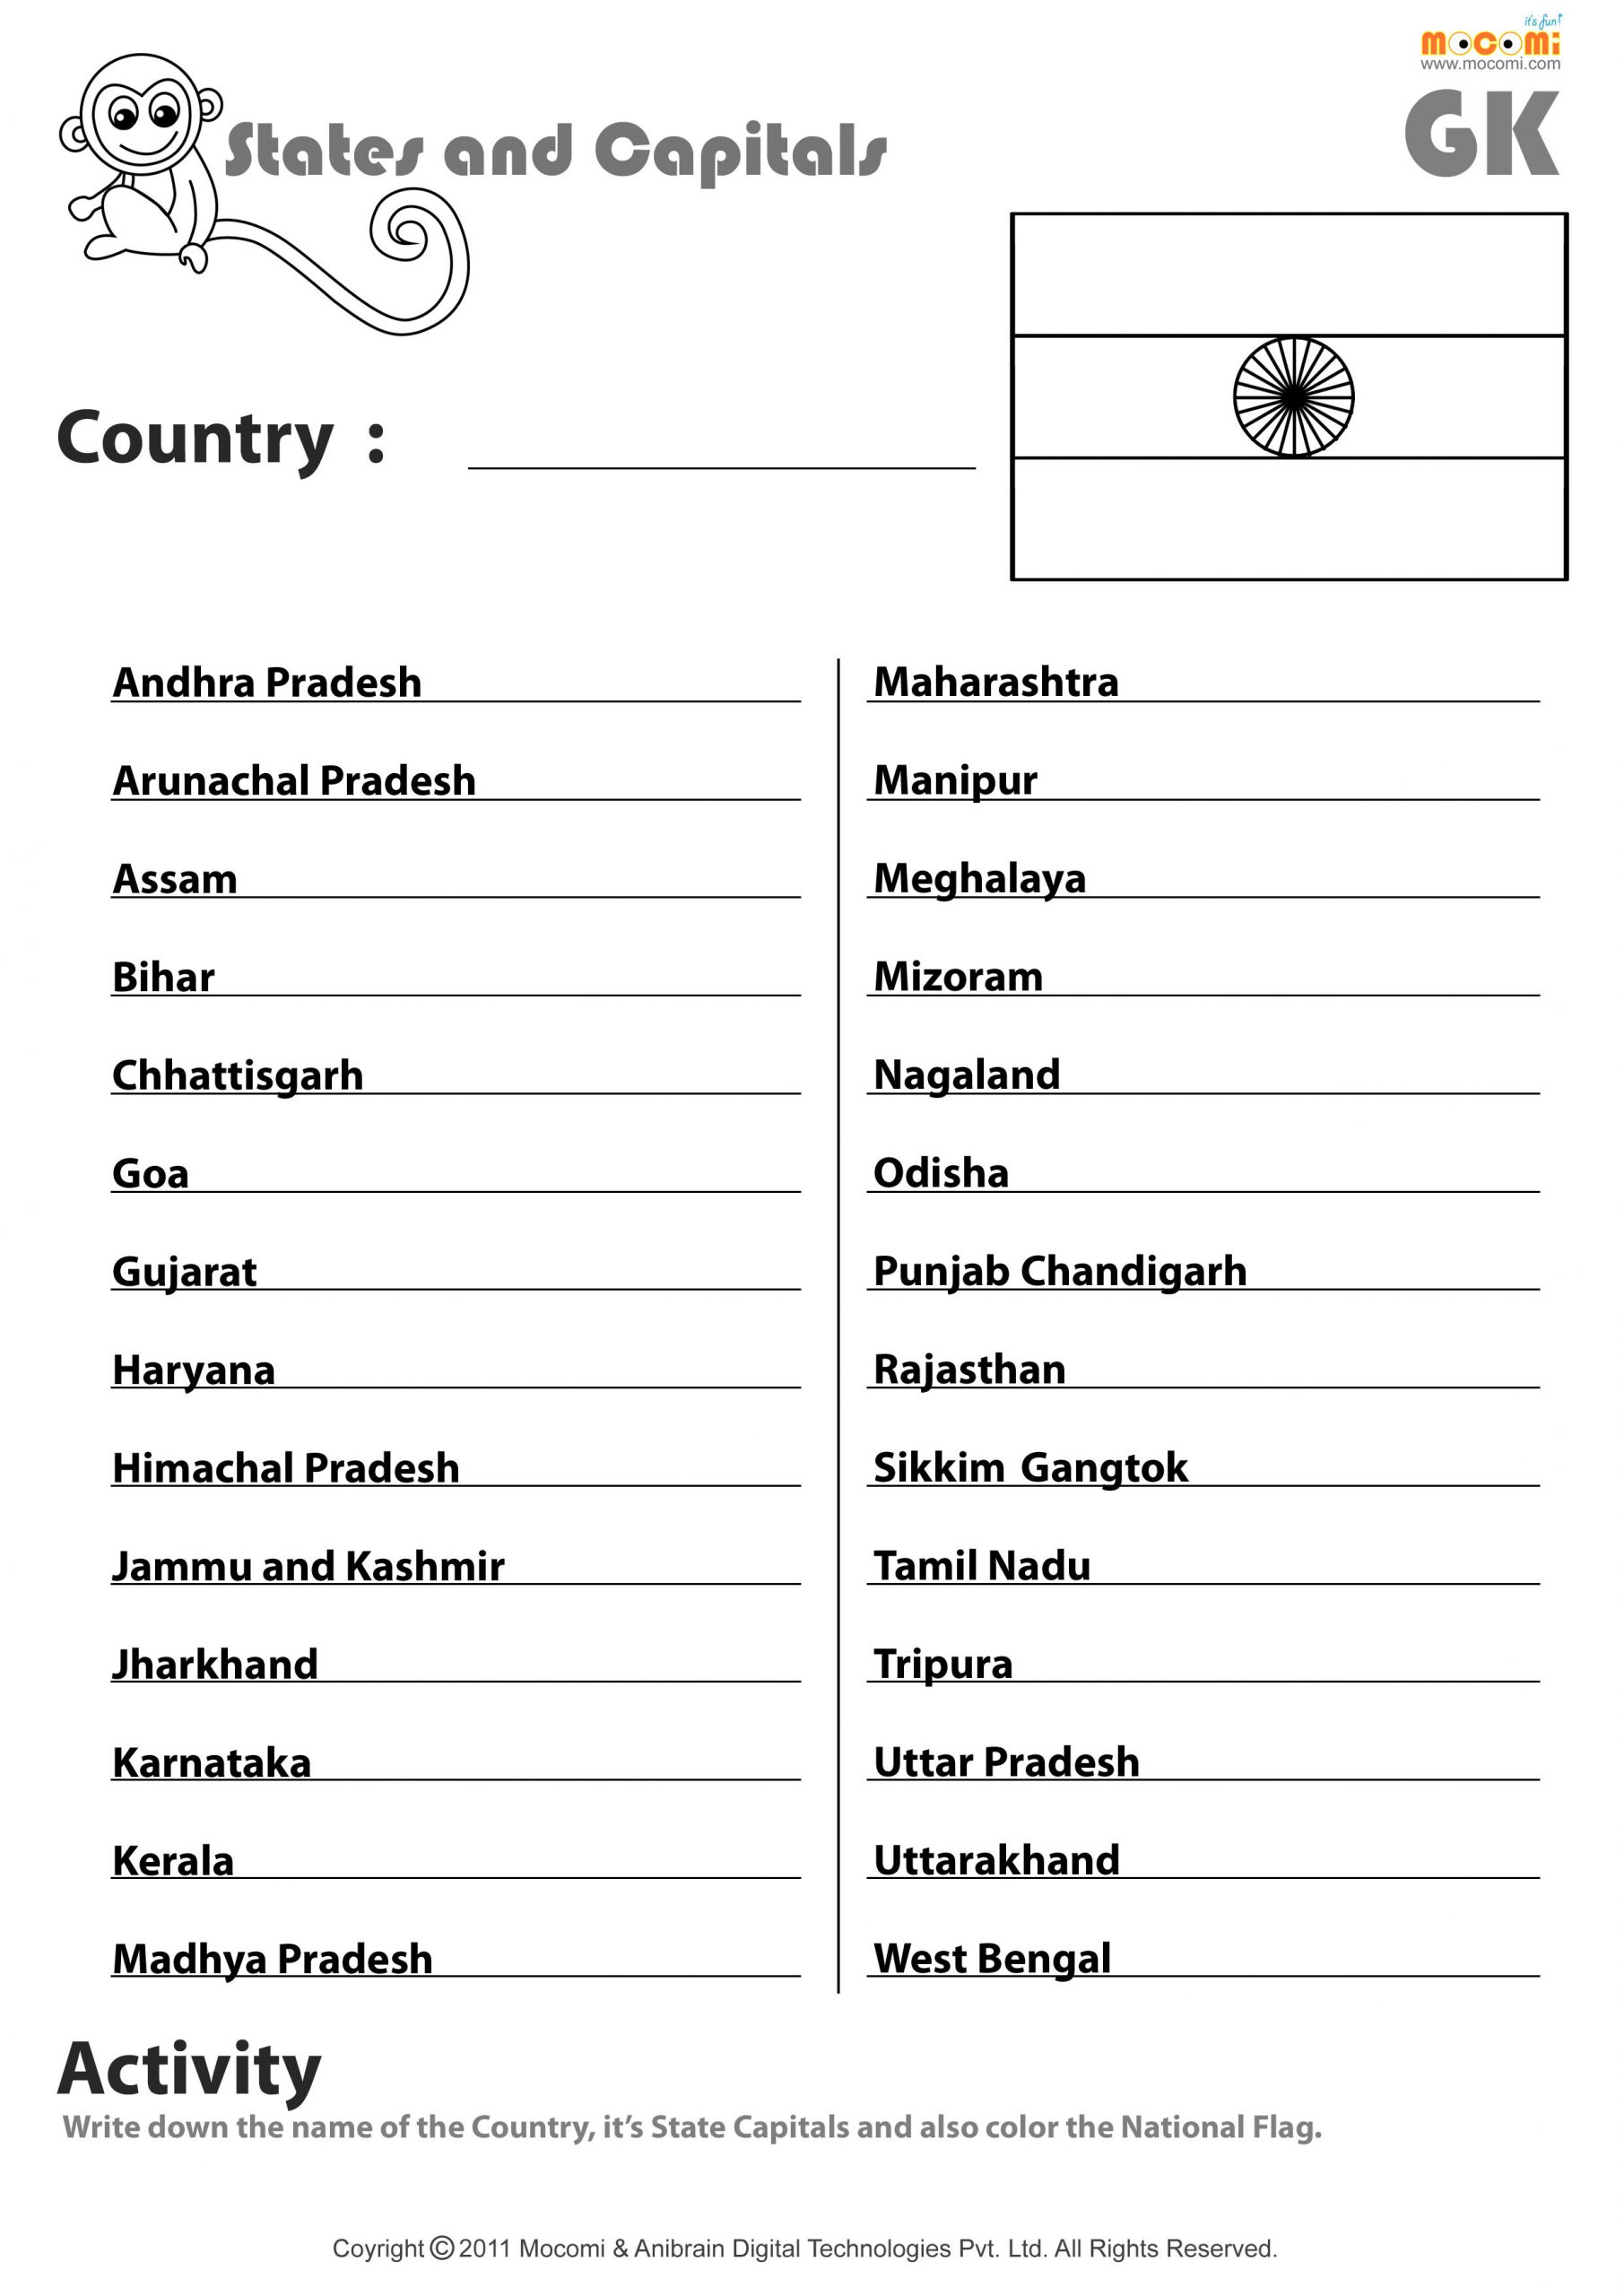 State and Capital Worksheets Printables Indian States and their Capitals English Worksheets for